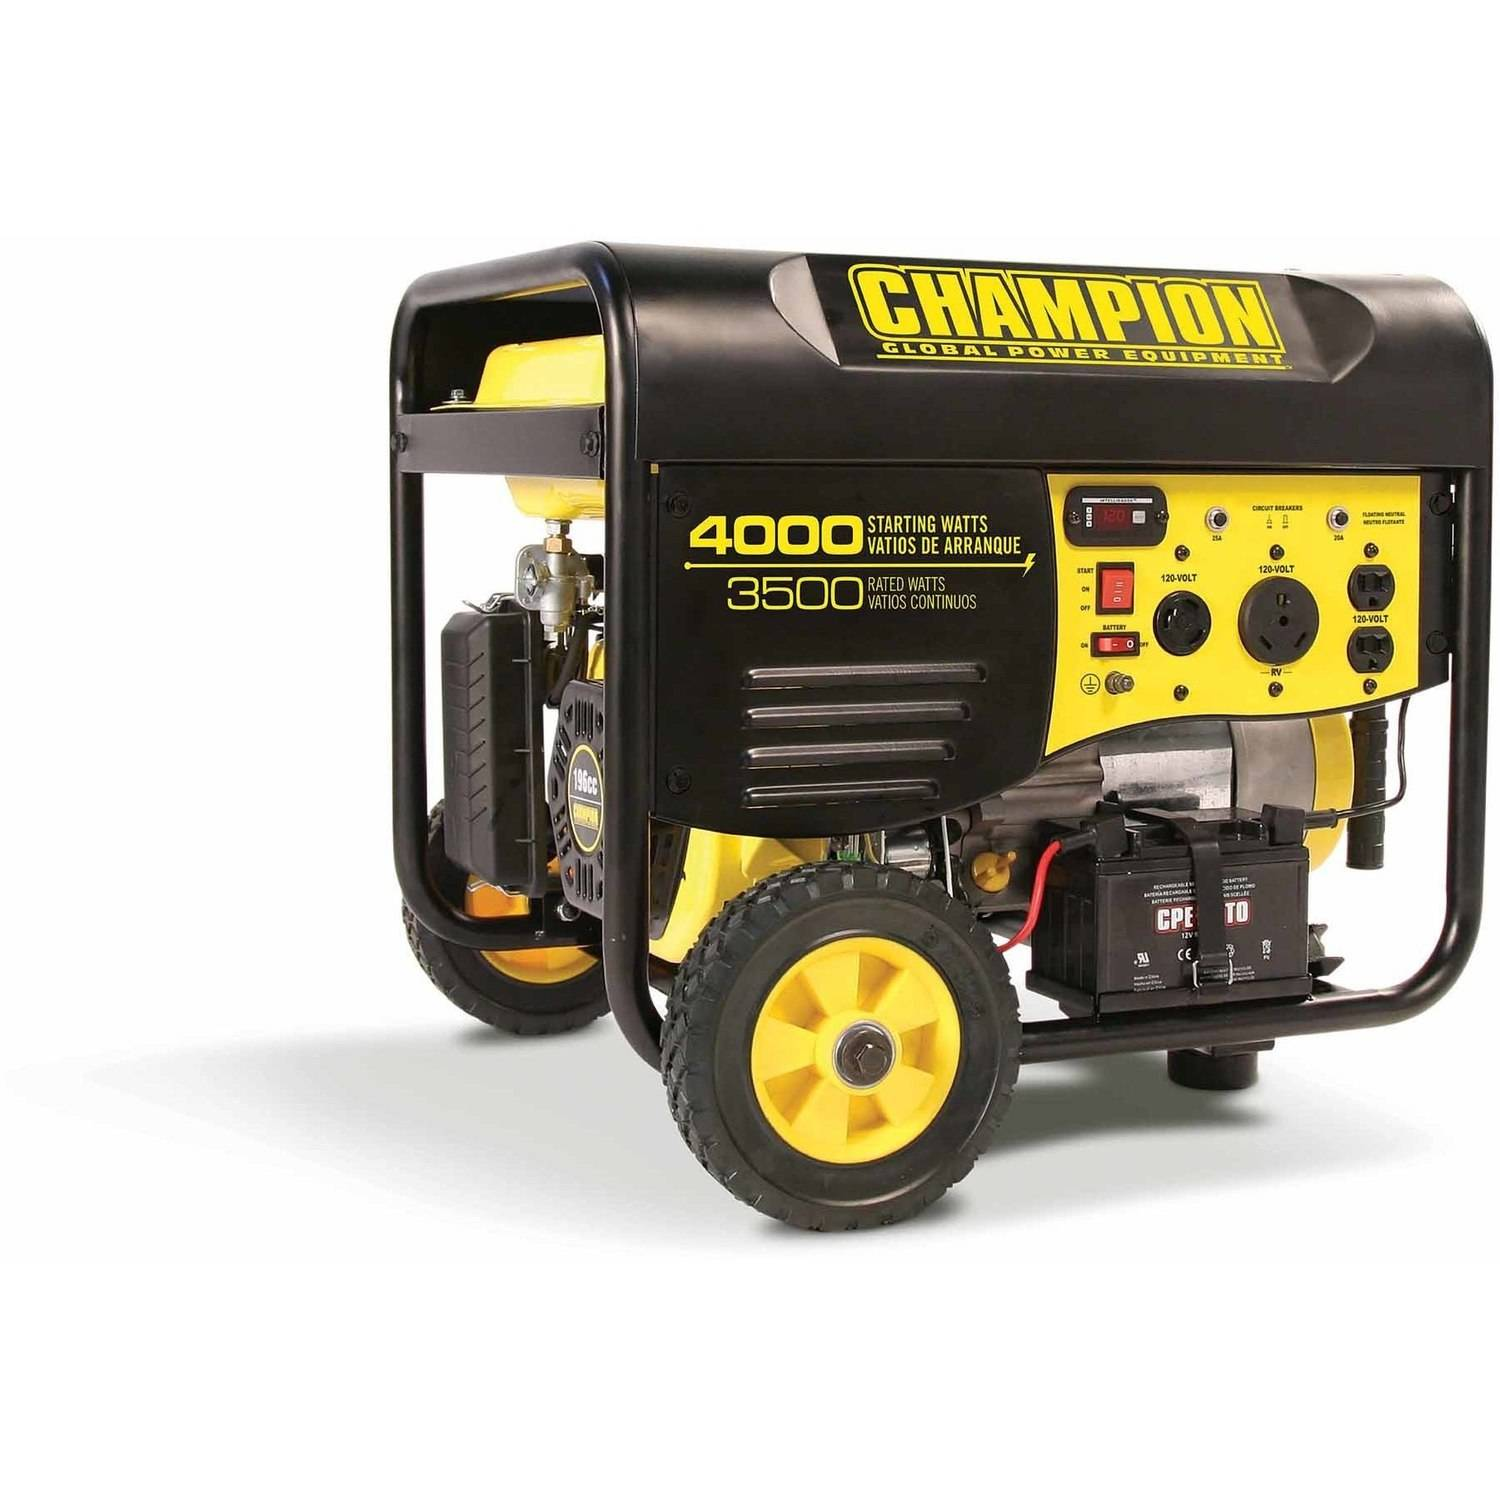 Champion 3500-Watt RV Ready Portable Generator with Wireless Remote Start (EPA) by Champion Power Equipment